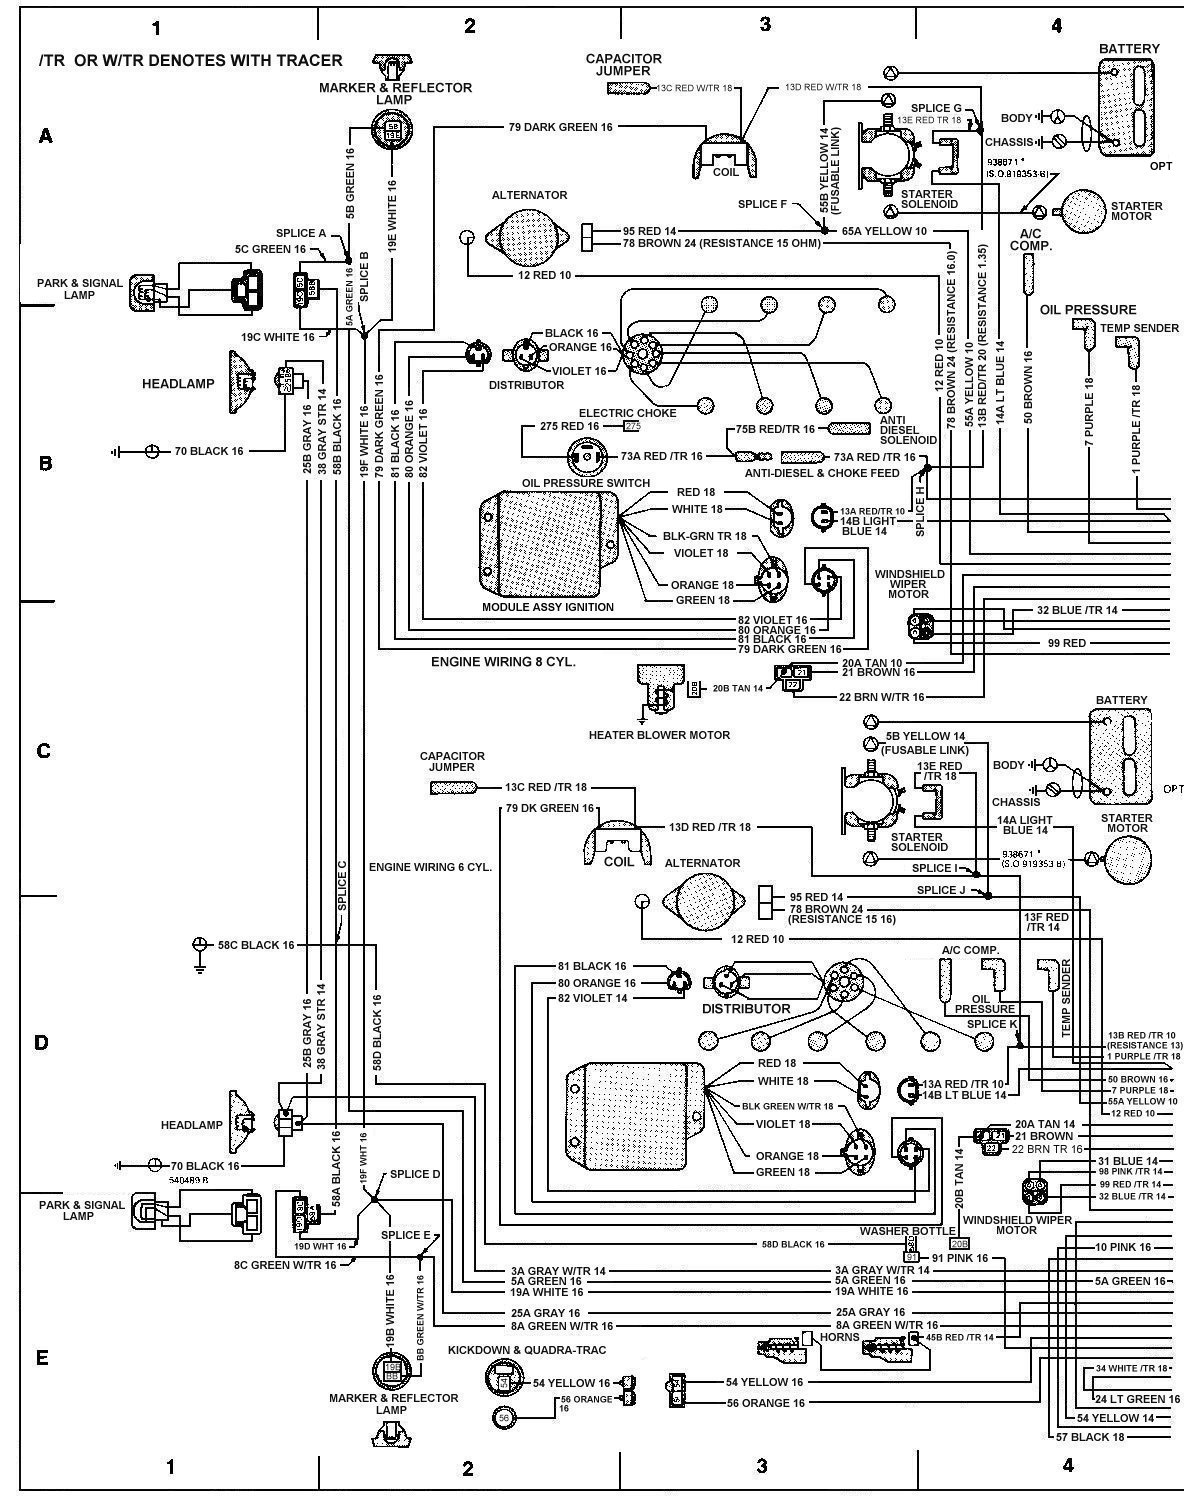 79 Corvette Gauge Wiring Diagram 32 Images Nova Wire Schematics Fsj Wiringdiagrampage2 Tom Oljeep Collins Page For Gauges At